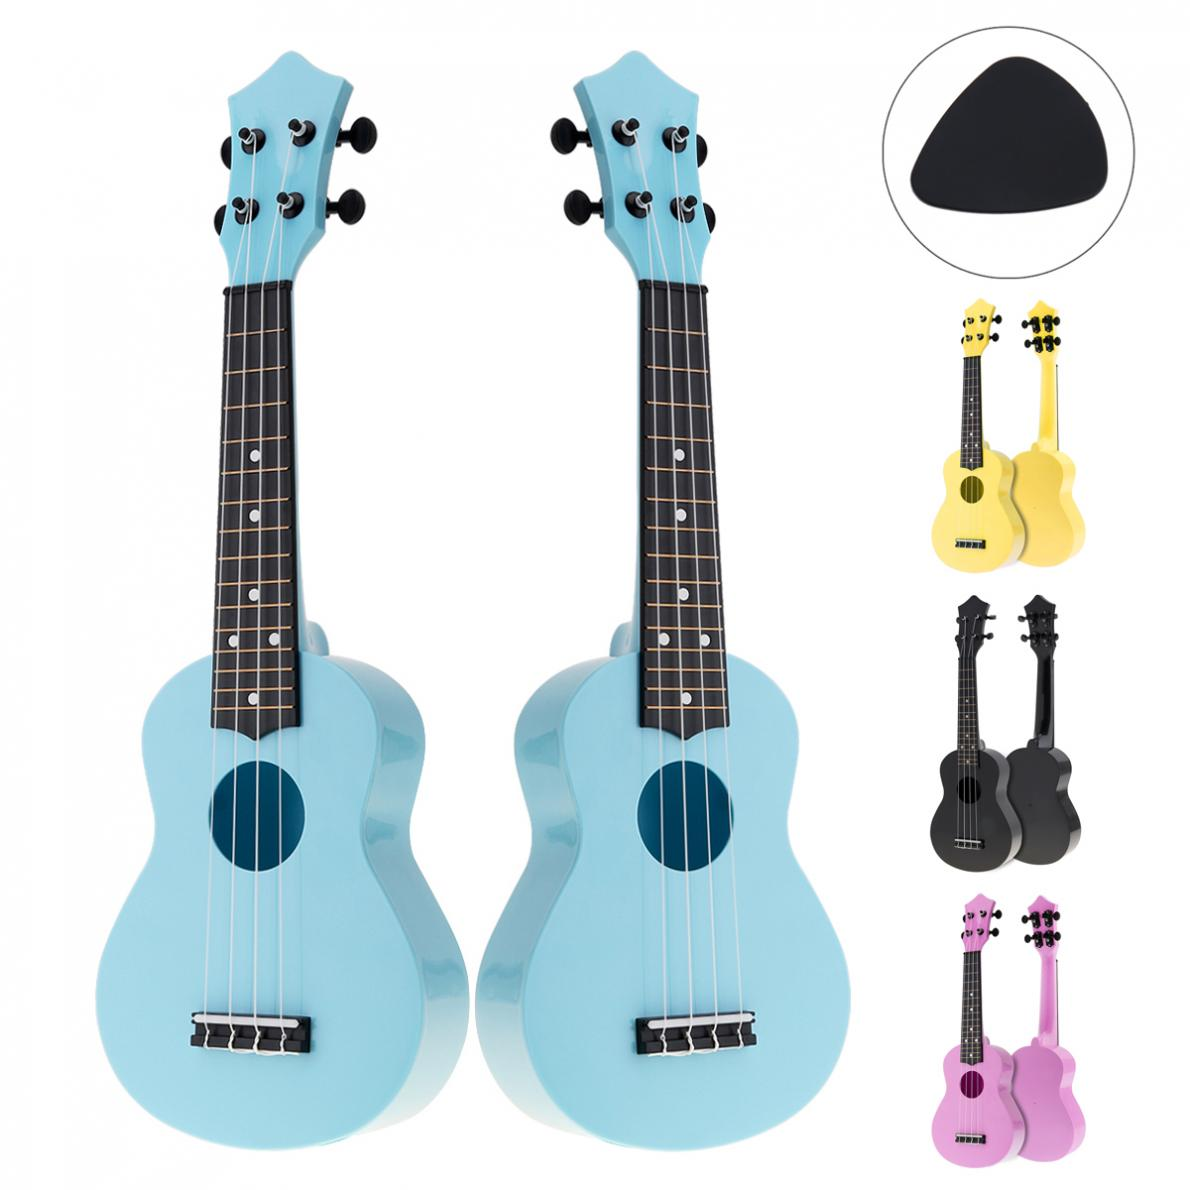 IRIN 21 Inch Colorful Acoustic Ukelele Uke 4 Strings Hawaii Guitar Guitarra Instrument for Kids and Music BeginnerIRIN 21 Inch Colorful Acoustic Ukelele Uke 4 Strings Hawaii Guitar Guitarra Instrument for Kids and Music Beginner